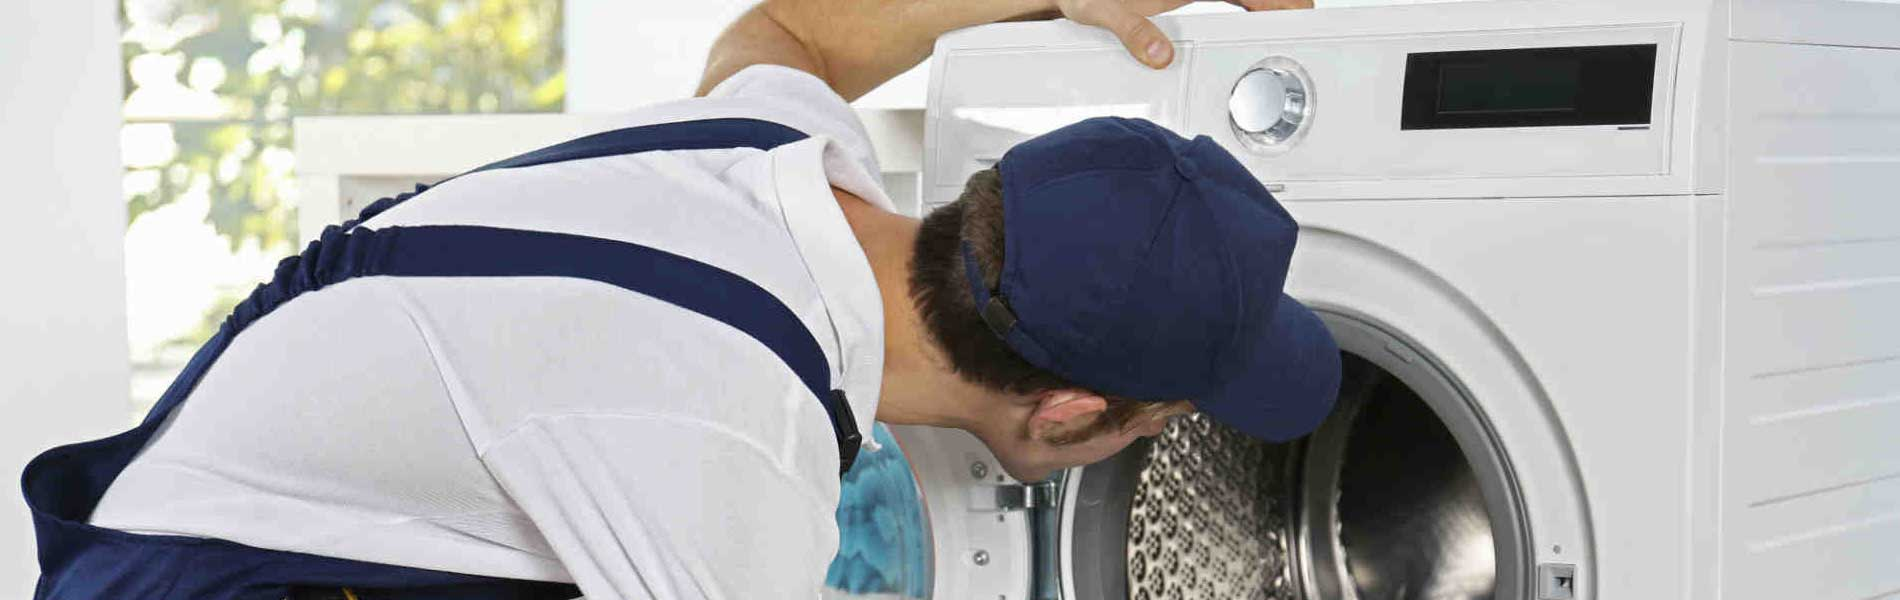 IFB Washing Machine Repair in Athipattu